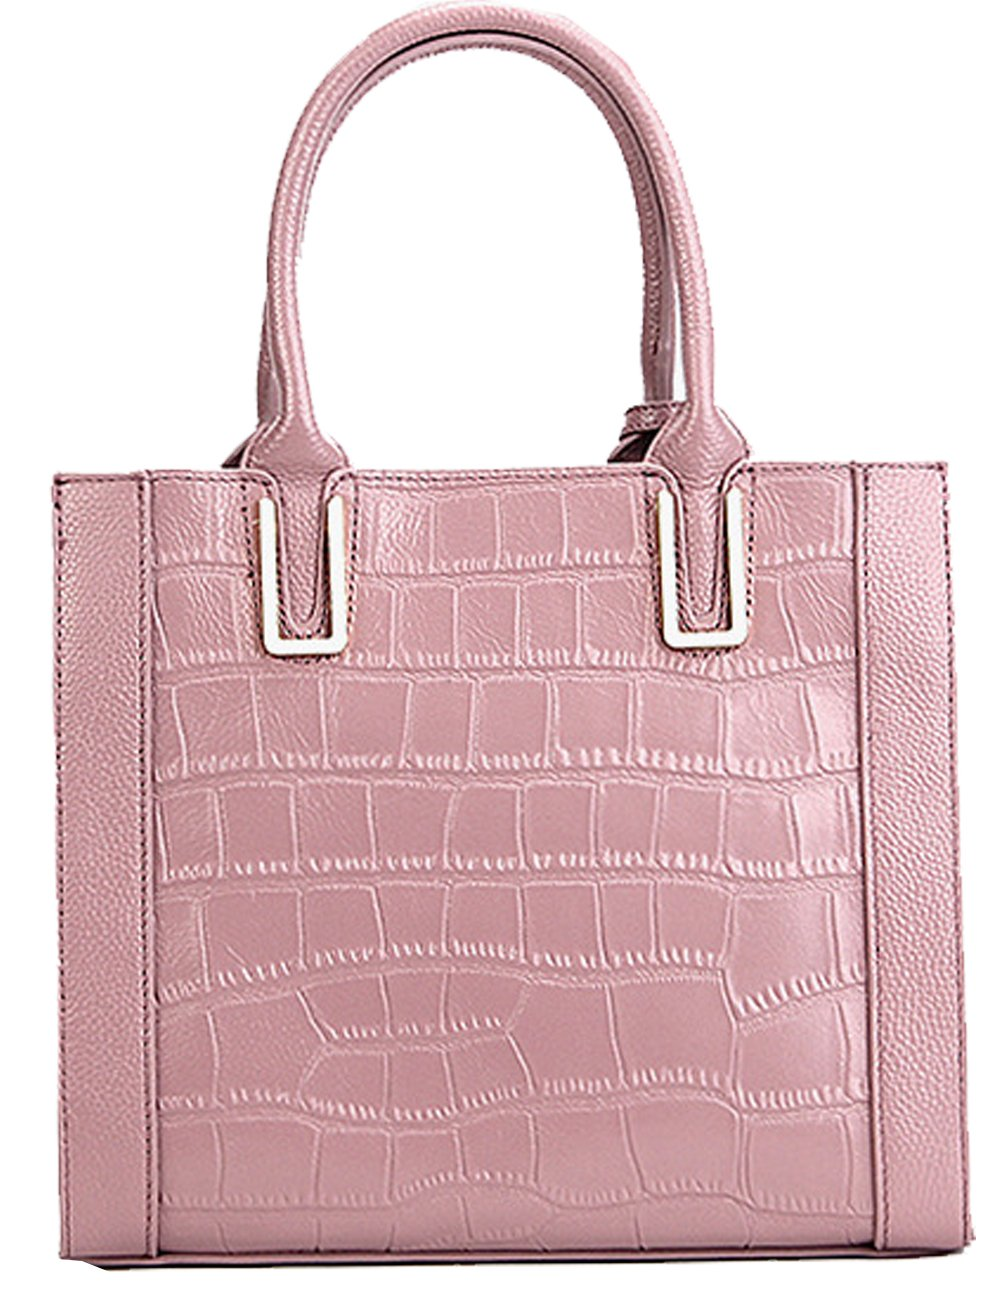 Menschwear Womens Genuine Leather Top Handle Satchel Bag Pink by Menschwear (Image #4)